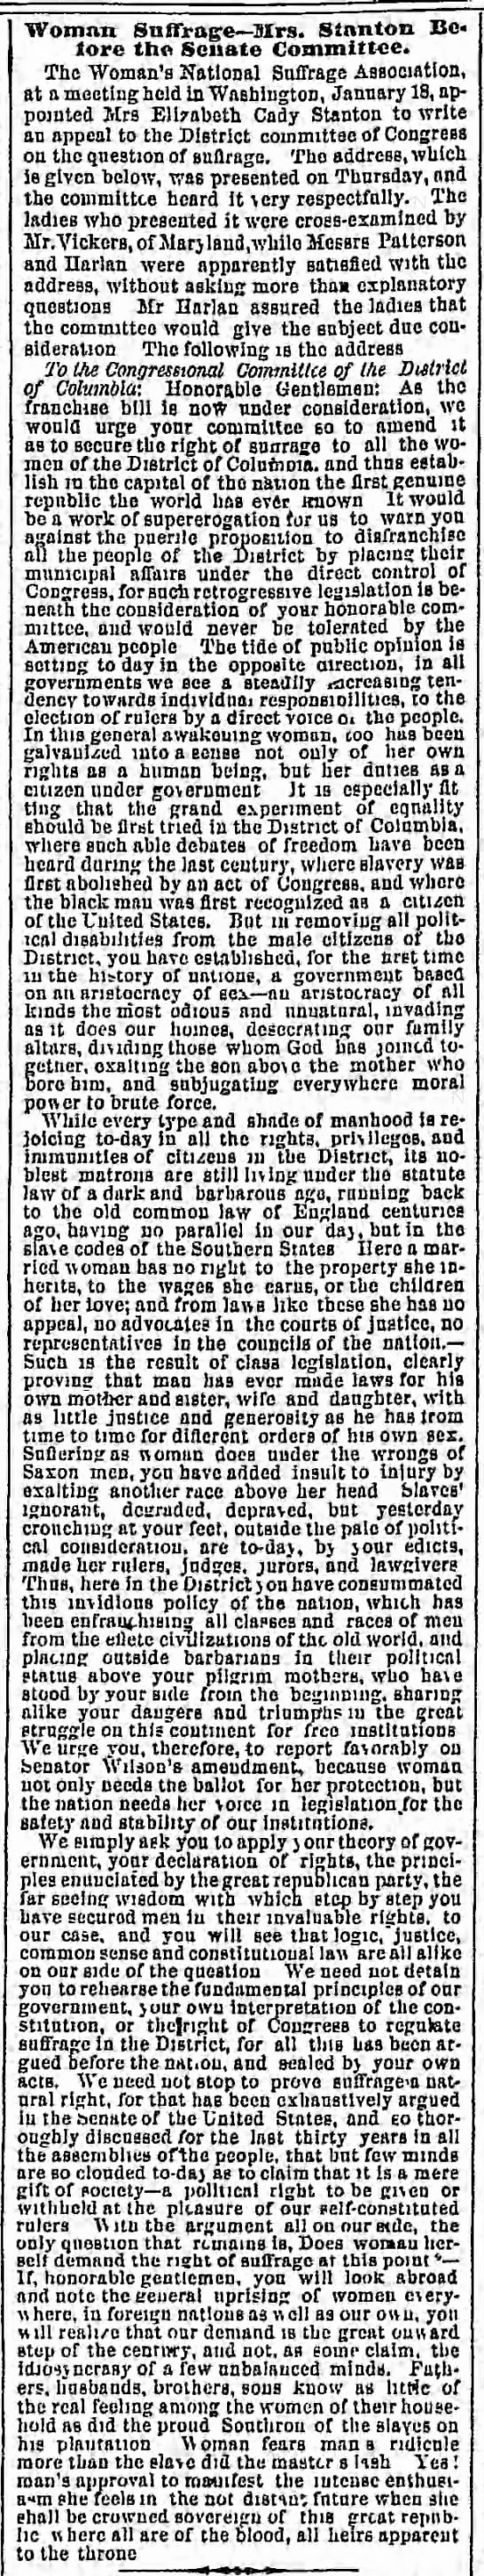 Elizabeth Cady Stanton addresses the Congressional Committee of the District of Columbia in 1869.